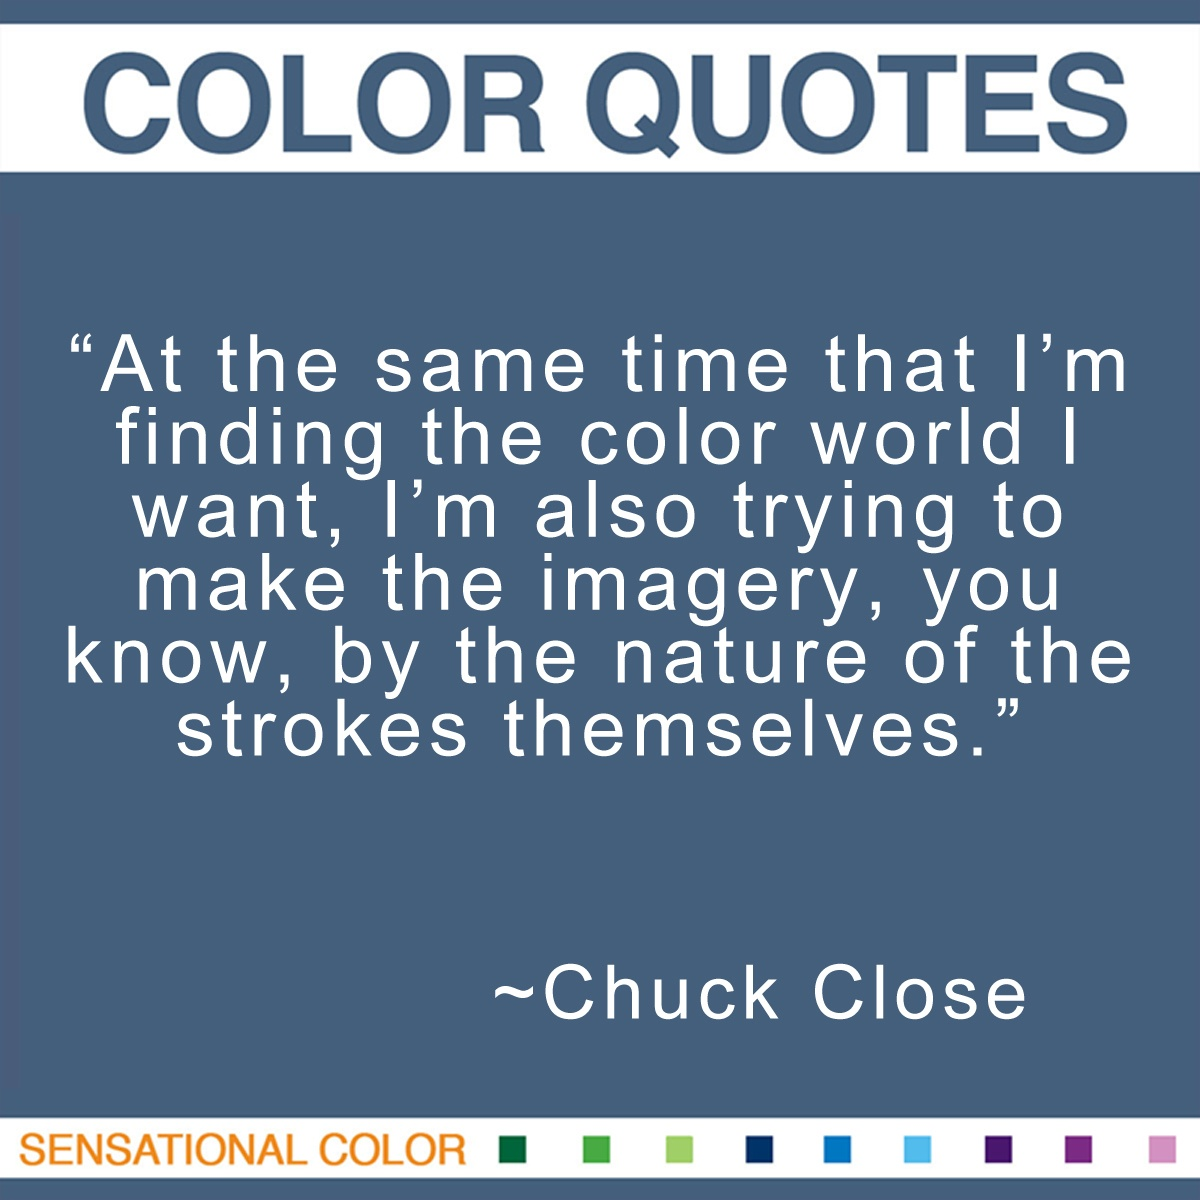 """At the same time that I'm finding the color world I want, I'm also trying to make the imagery, you know, by the nature of the strokes themselves."" - Chuck Close"